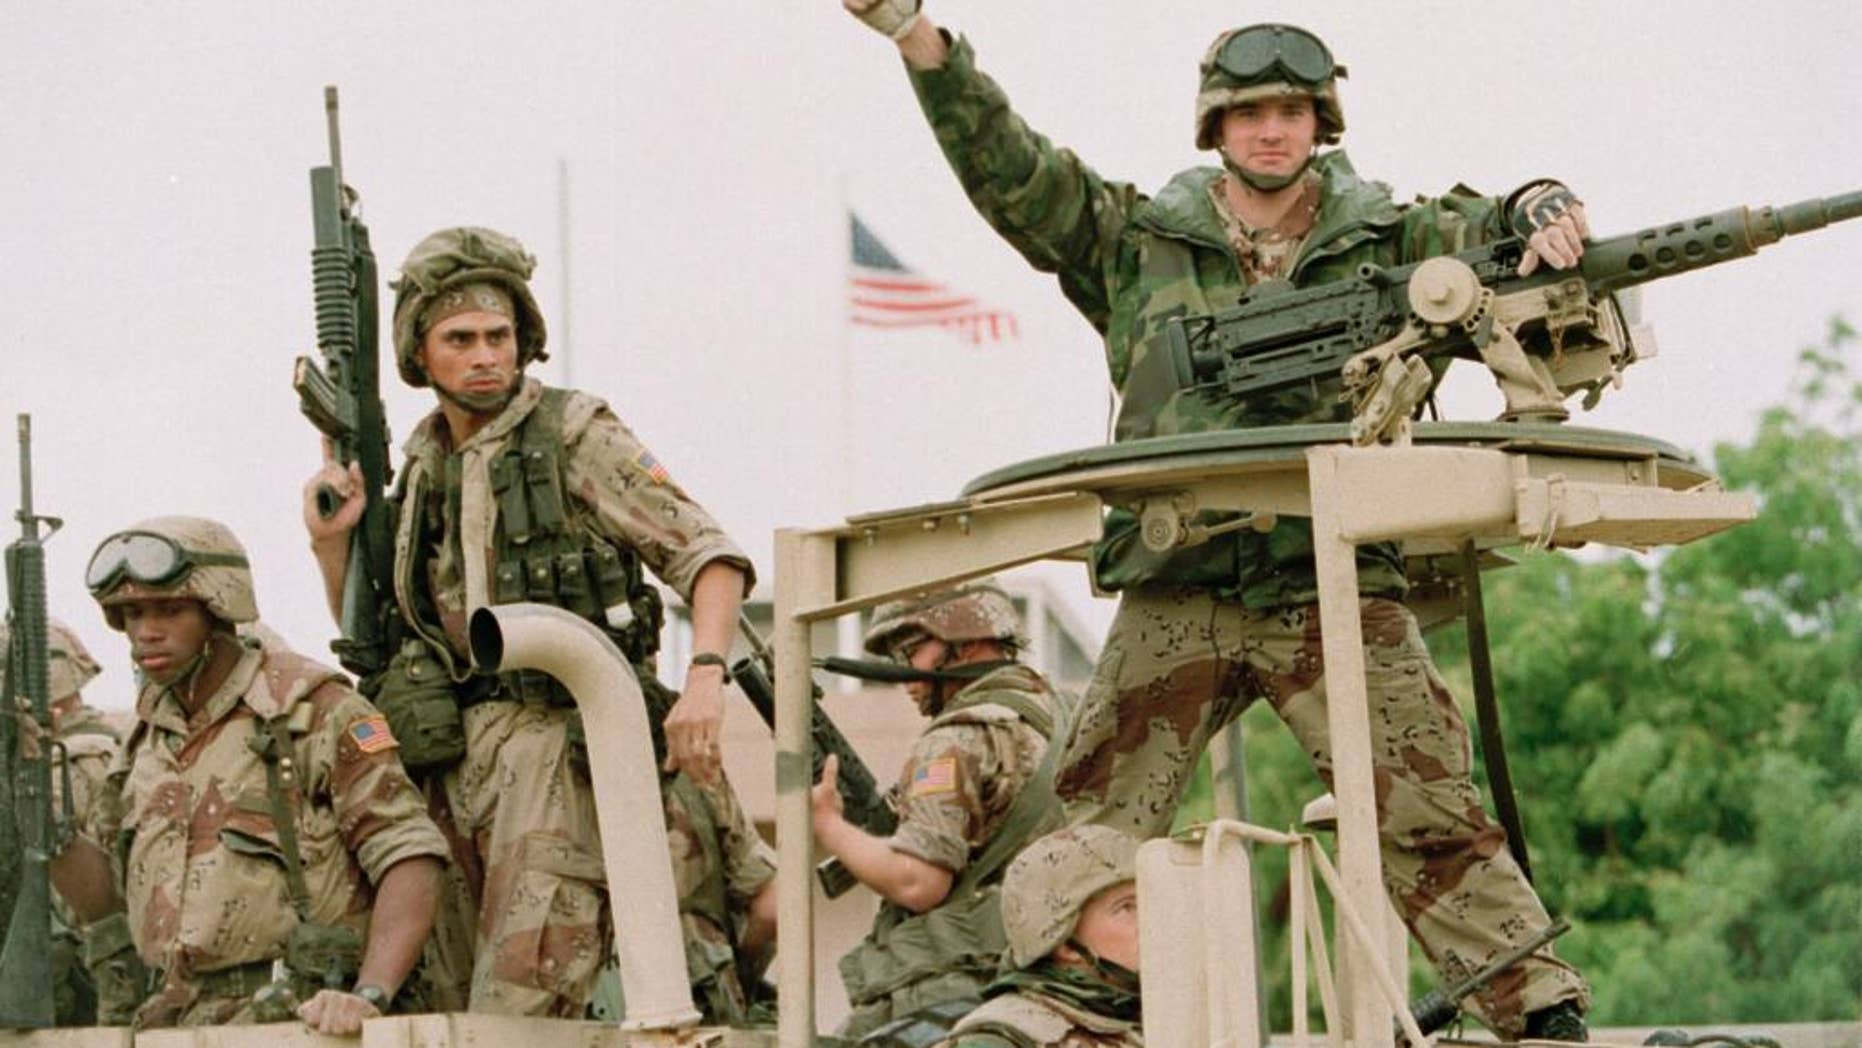 FILE - In a Dec. 10, 1992 file photo, a U.S. Marine gives the thumbs up as a truck load of troops arrive at the reopened U.S. Embassy in Mogadishu, Somalia.  According to the U.S. Africa Command on Friday April 14, 2017,  the U.S. military is sending dozens of regular troops to Somalia to train Somali soldiers in the largest such deployment to the Horn of Africa country in roughly two decades.   (AP Photo/Denis Pauqin, File)